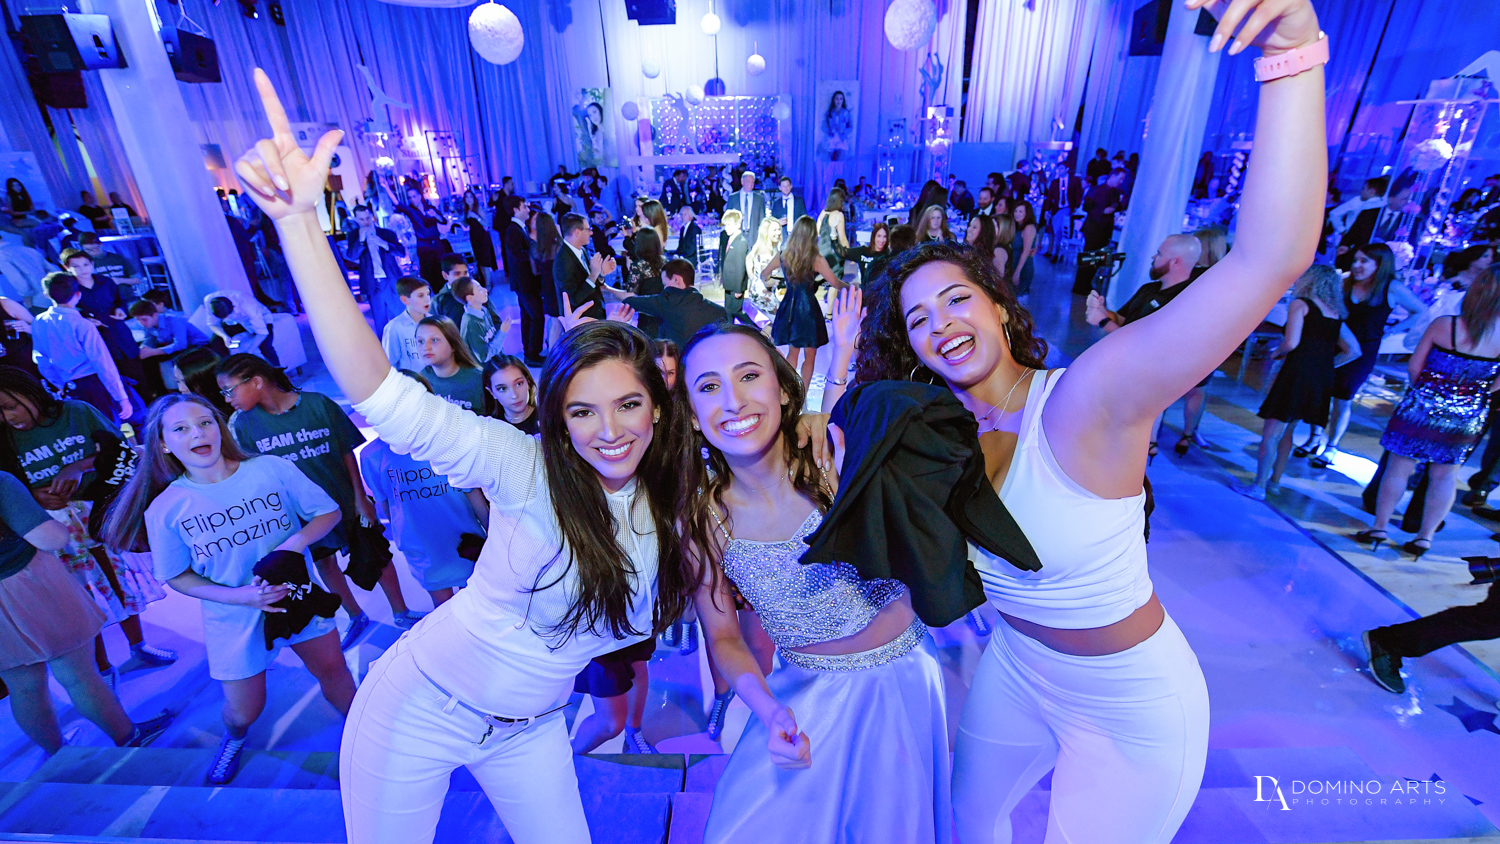 rock with u dancers at Gymnastics Theme Bat Mitzvah at Xtreme Action Park by Domino Arts